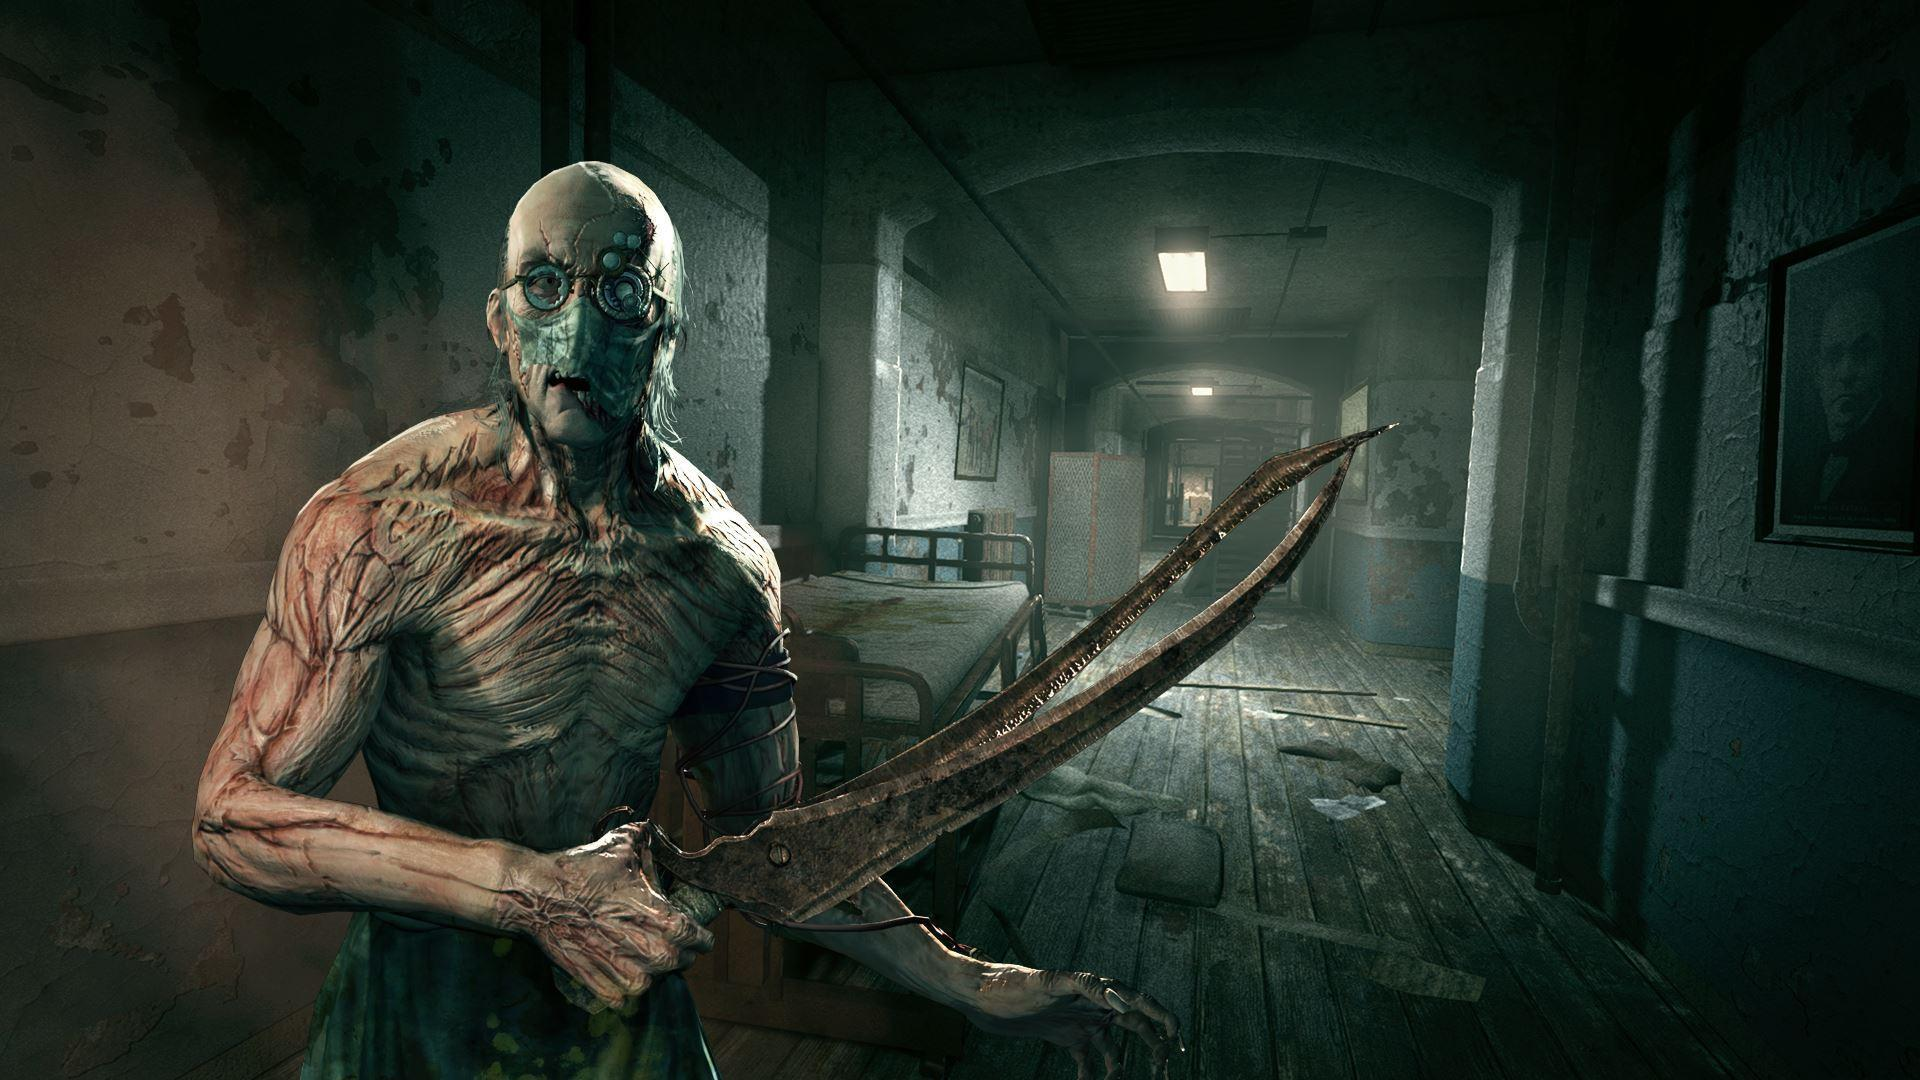 Which Outlast part (main game or Whistleblower) was more scarier to you?